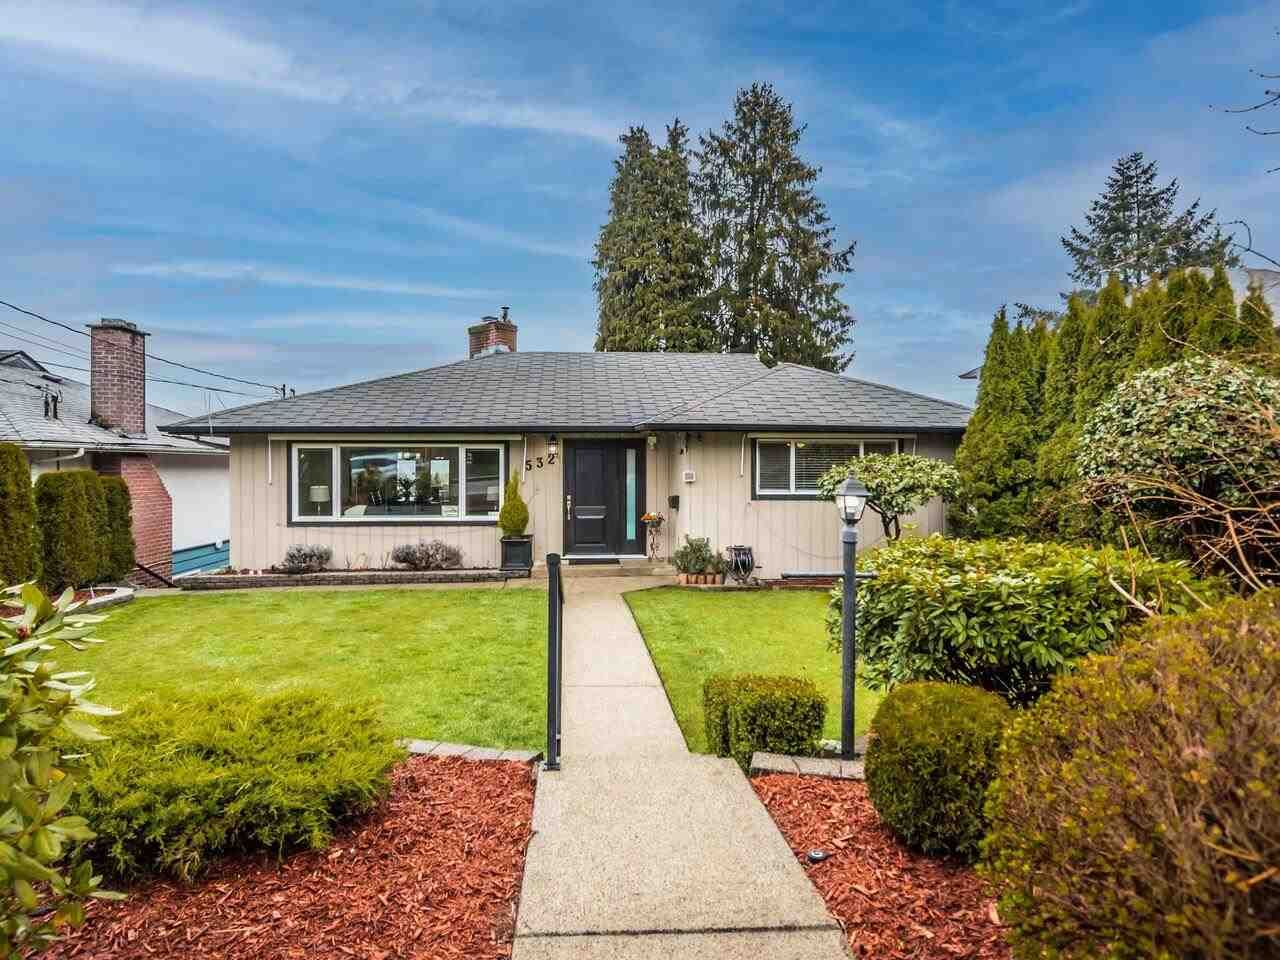 Main Photo: 532 AMESS Street in New Westminster: The Heights NW House for sale : MLS®# R2556517